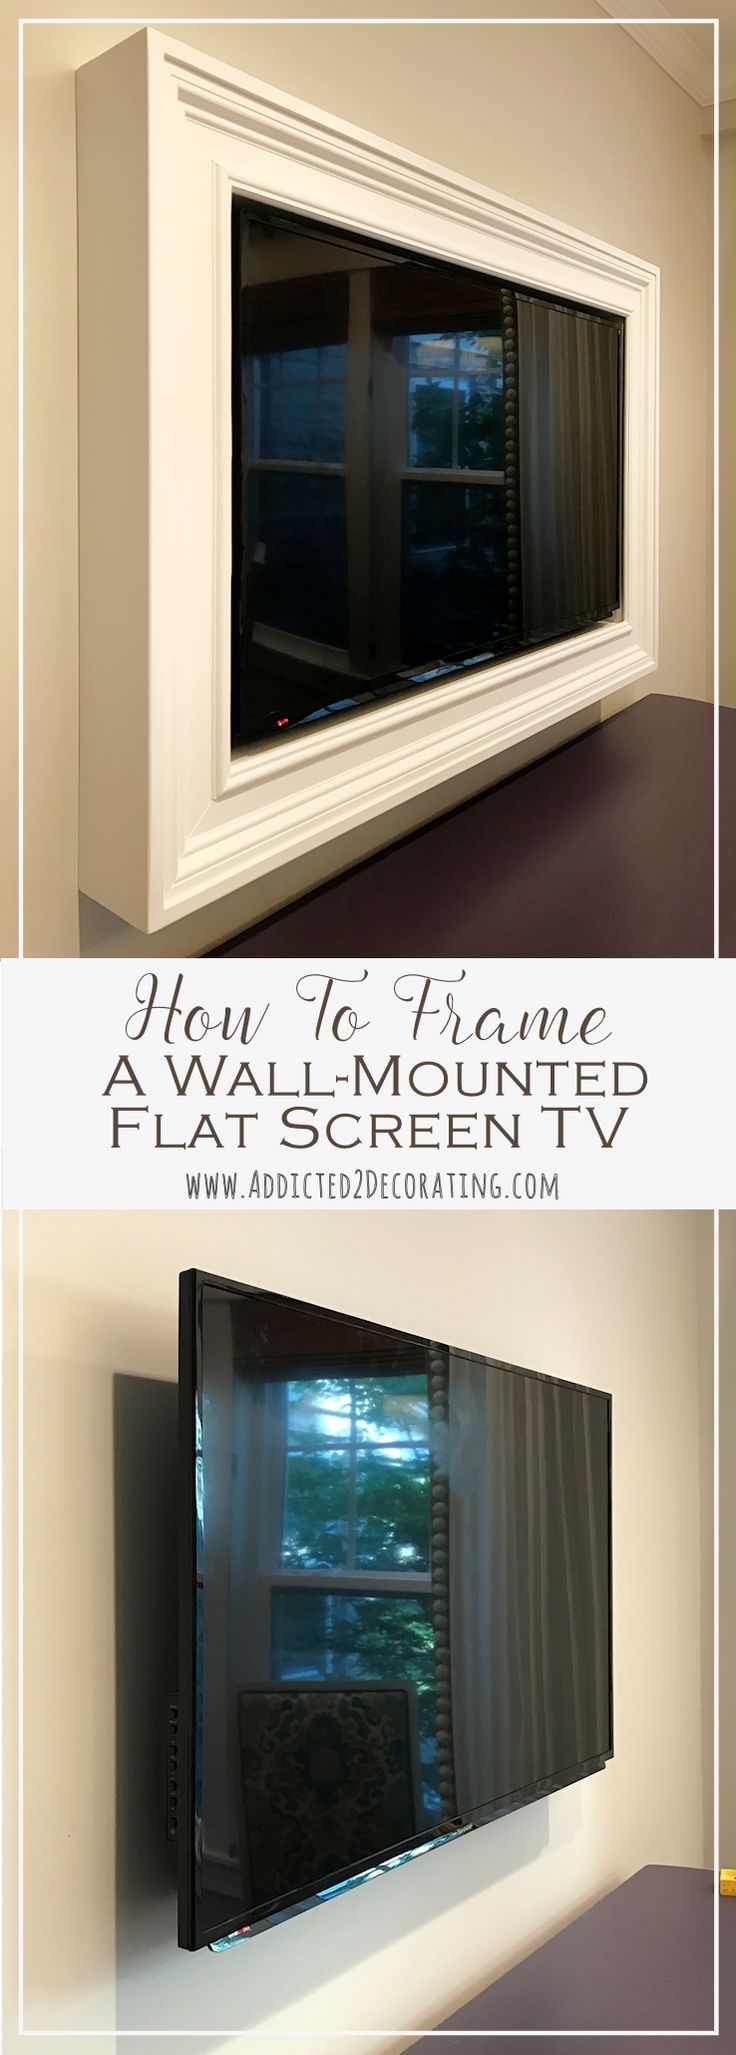 25+ best bedroom tv ideas on pinterest | bedroom tv stand, tv wall